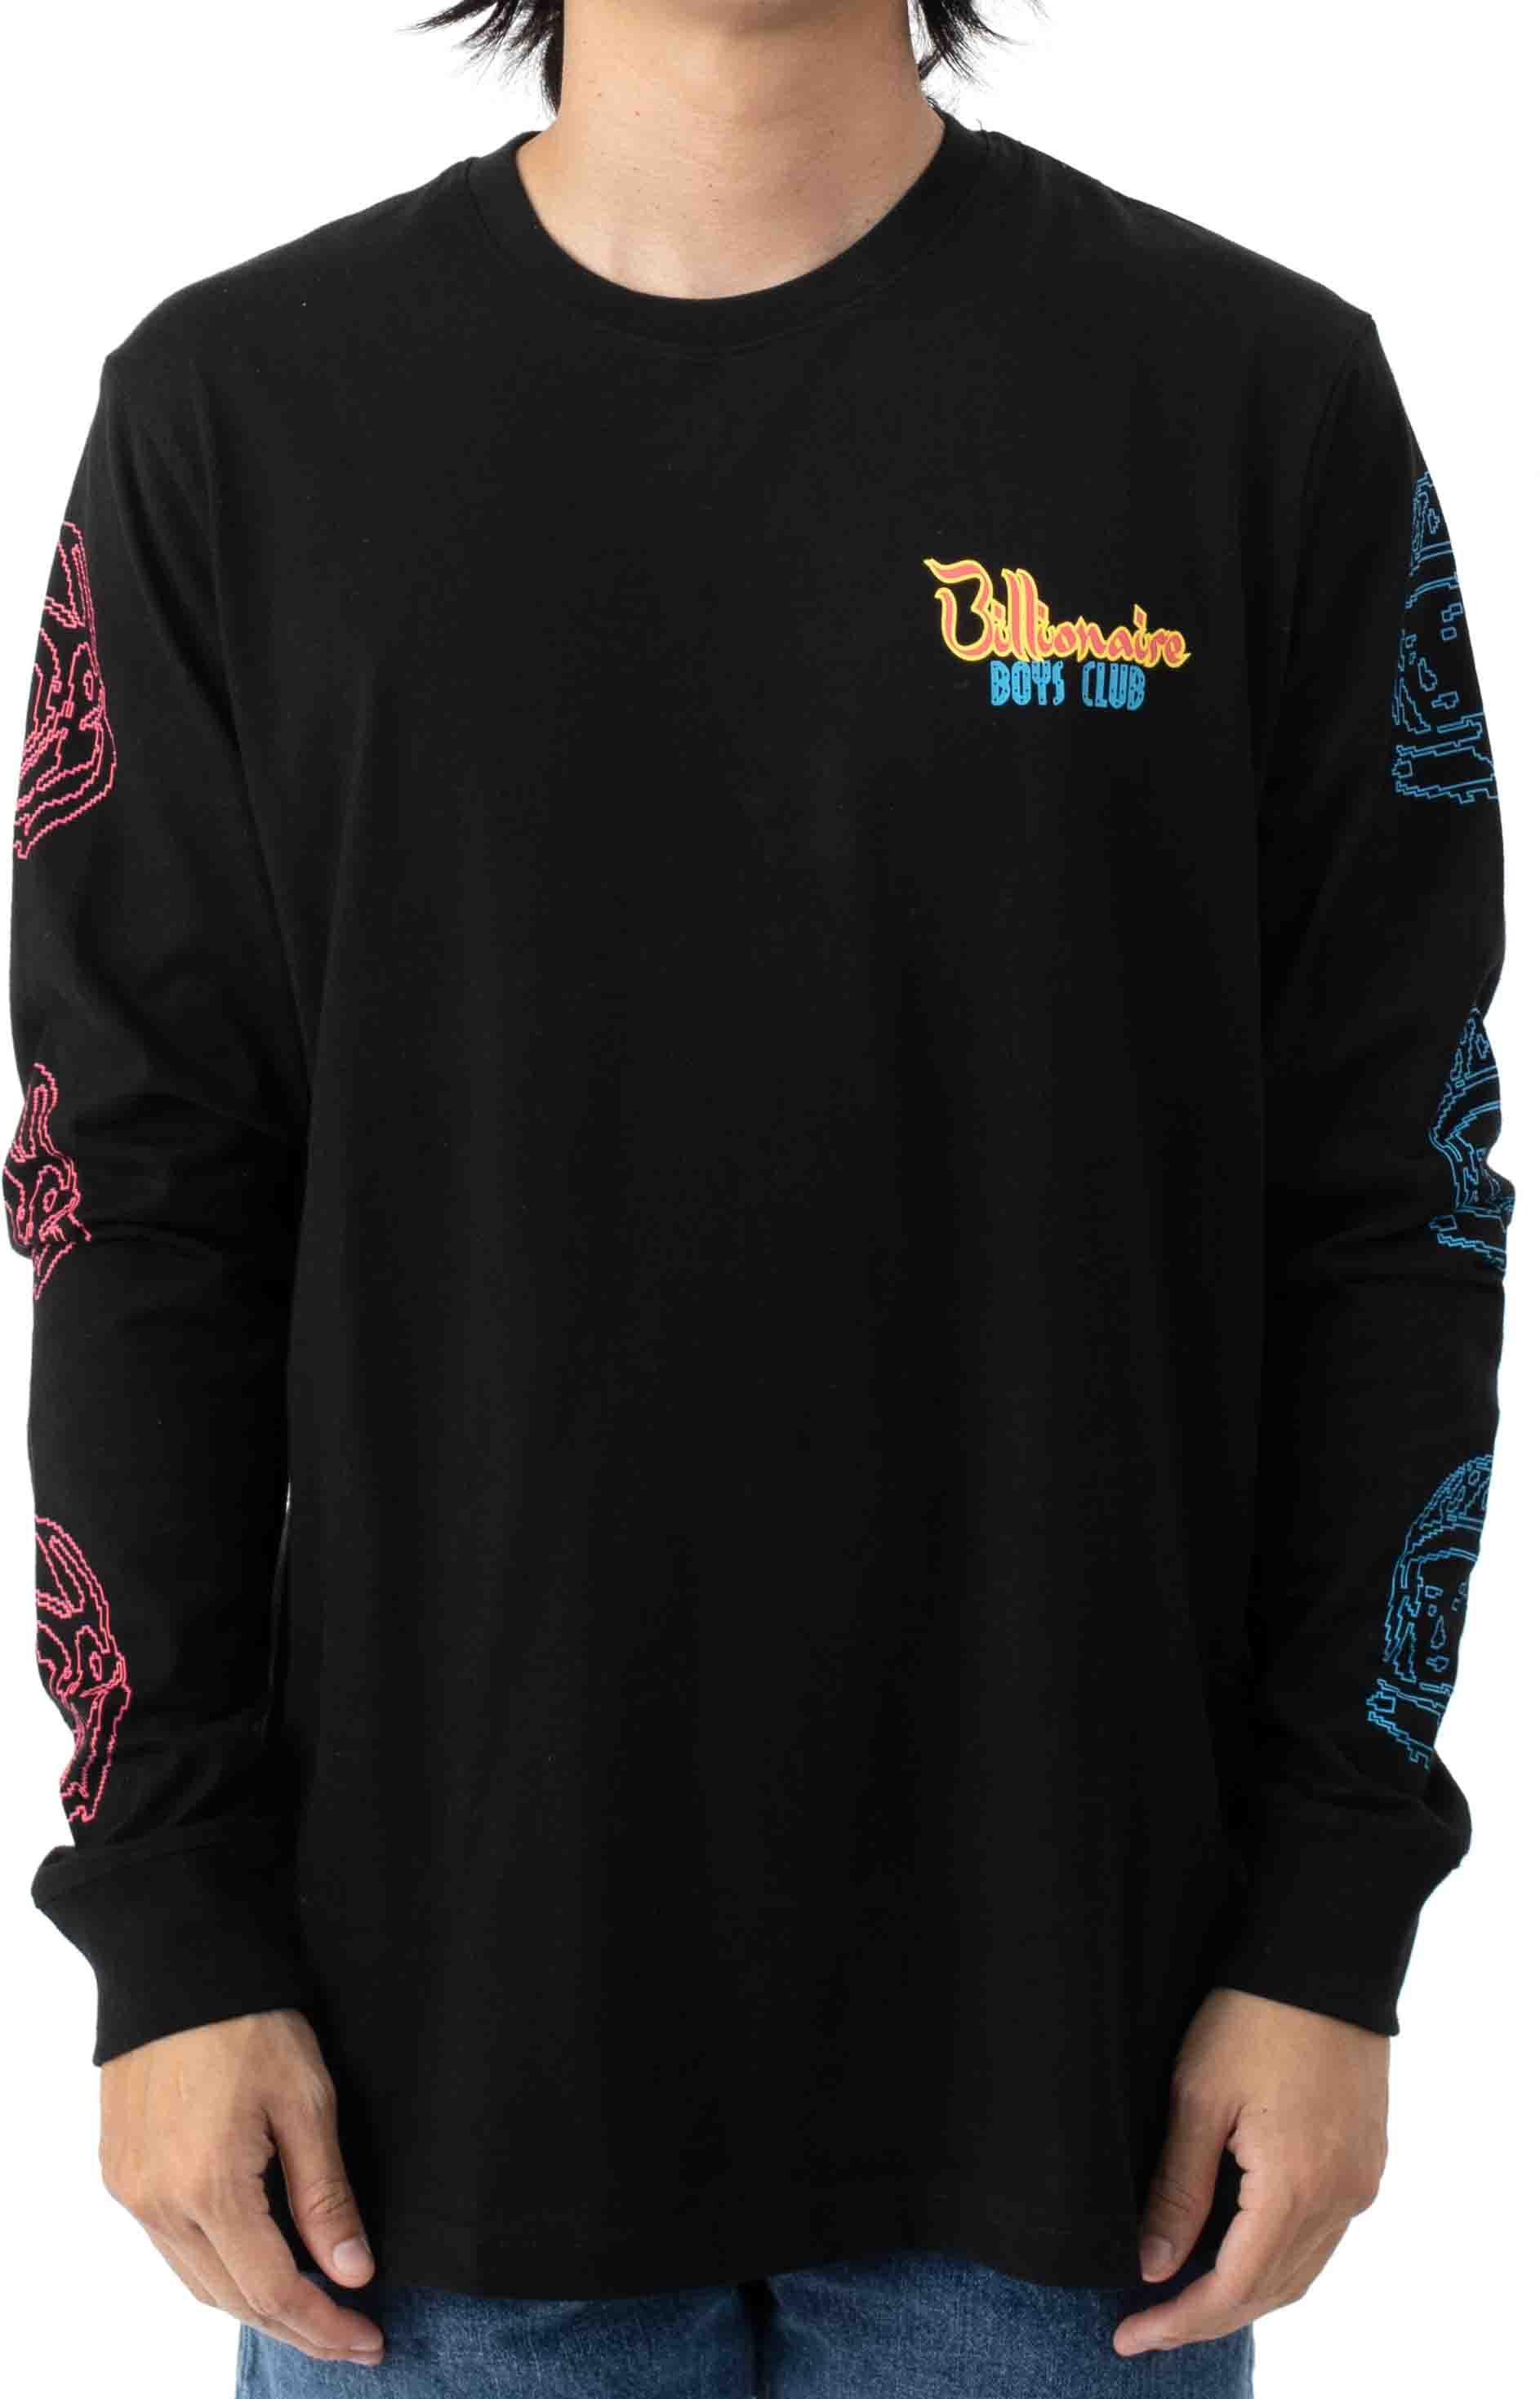 Heart and Mind L/S Shirt - Black  2